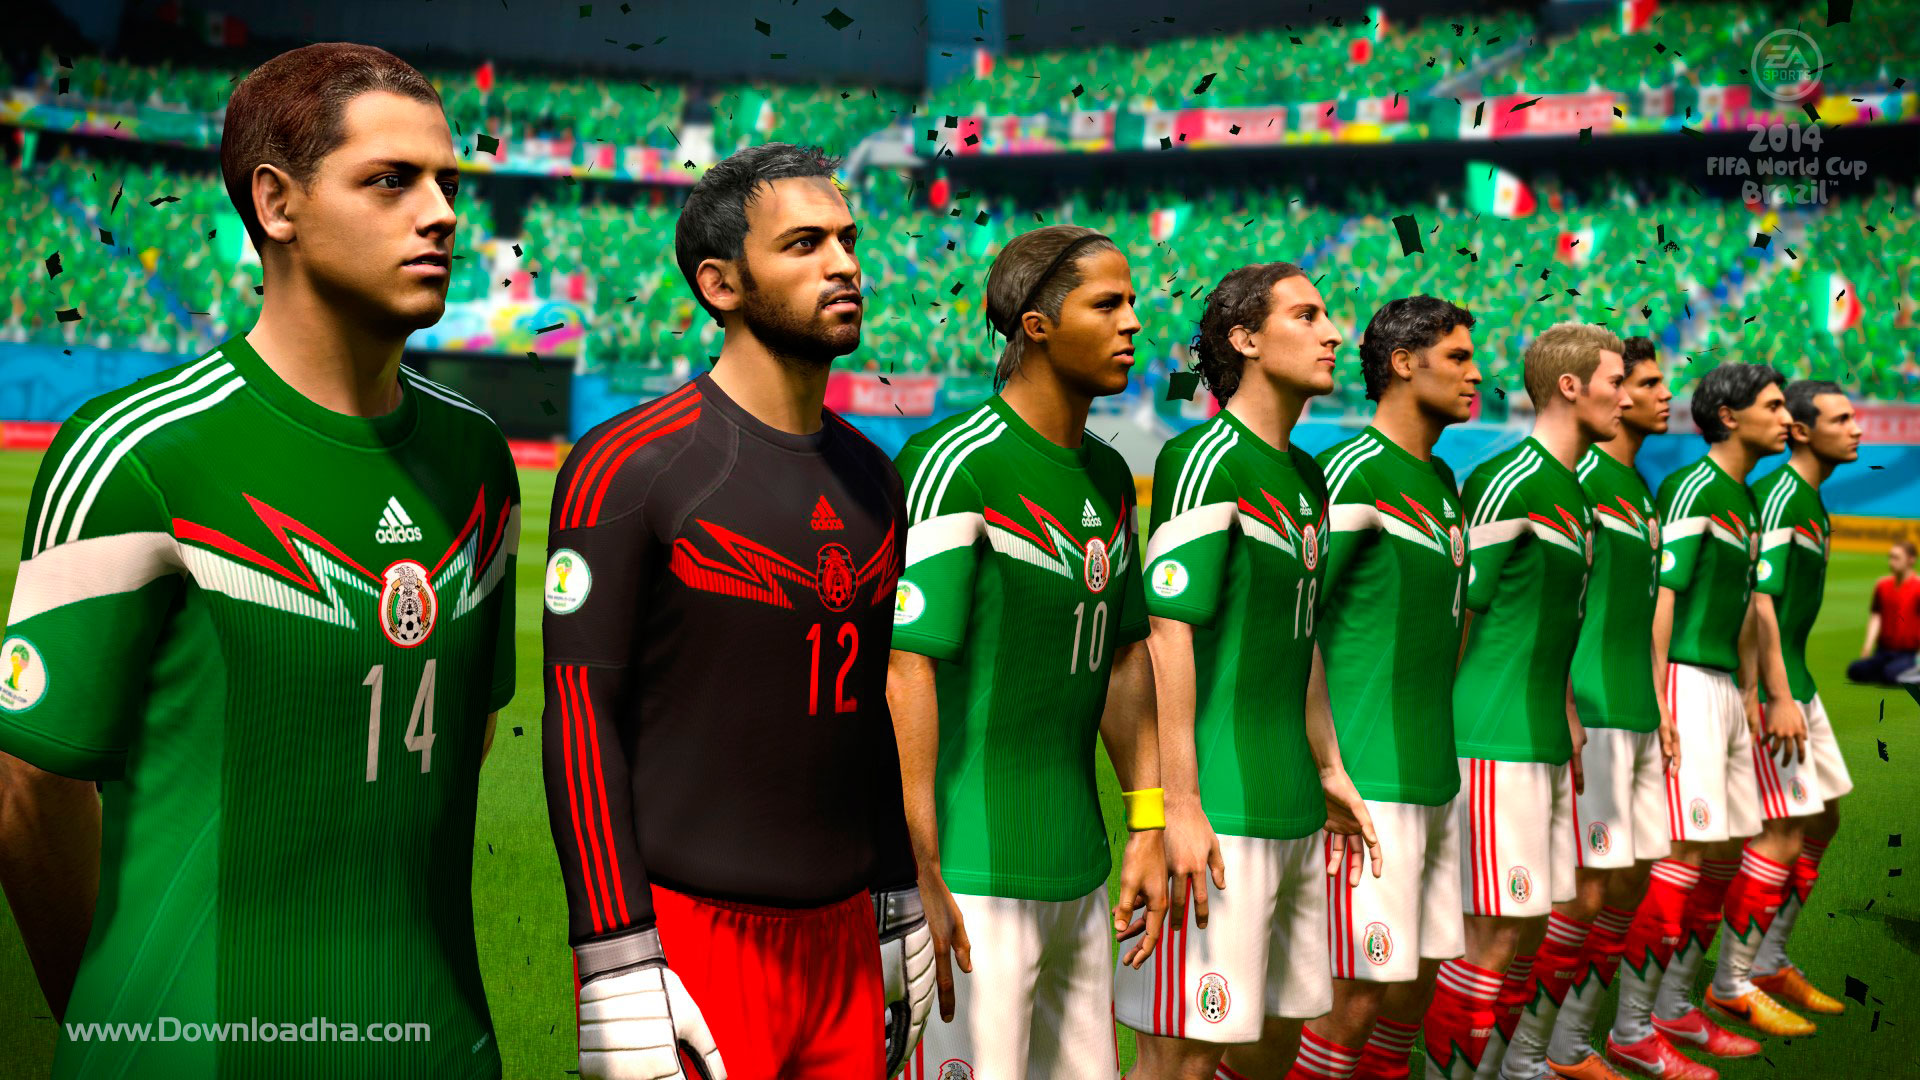 http://img5.downloadha.com/hosein/Game/PS3/2014%20FIFA%20World%20Cup%20Brazil/2014-FIFA-World-Cup-Brazil-screenshots-06-large.jpg